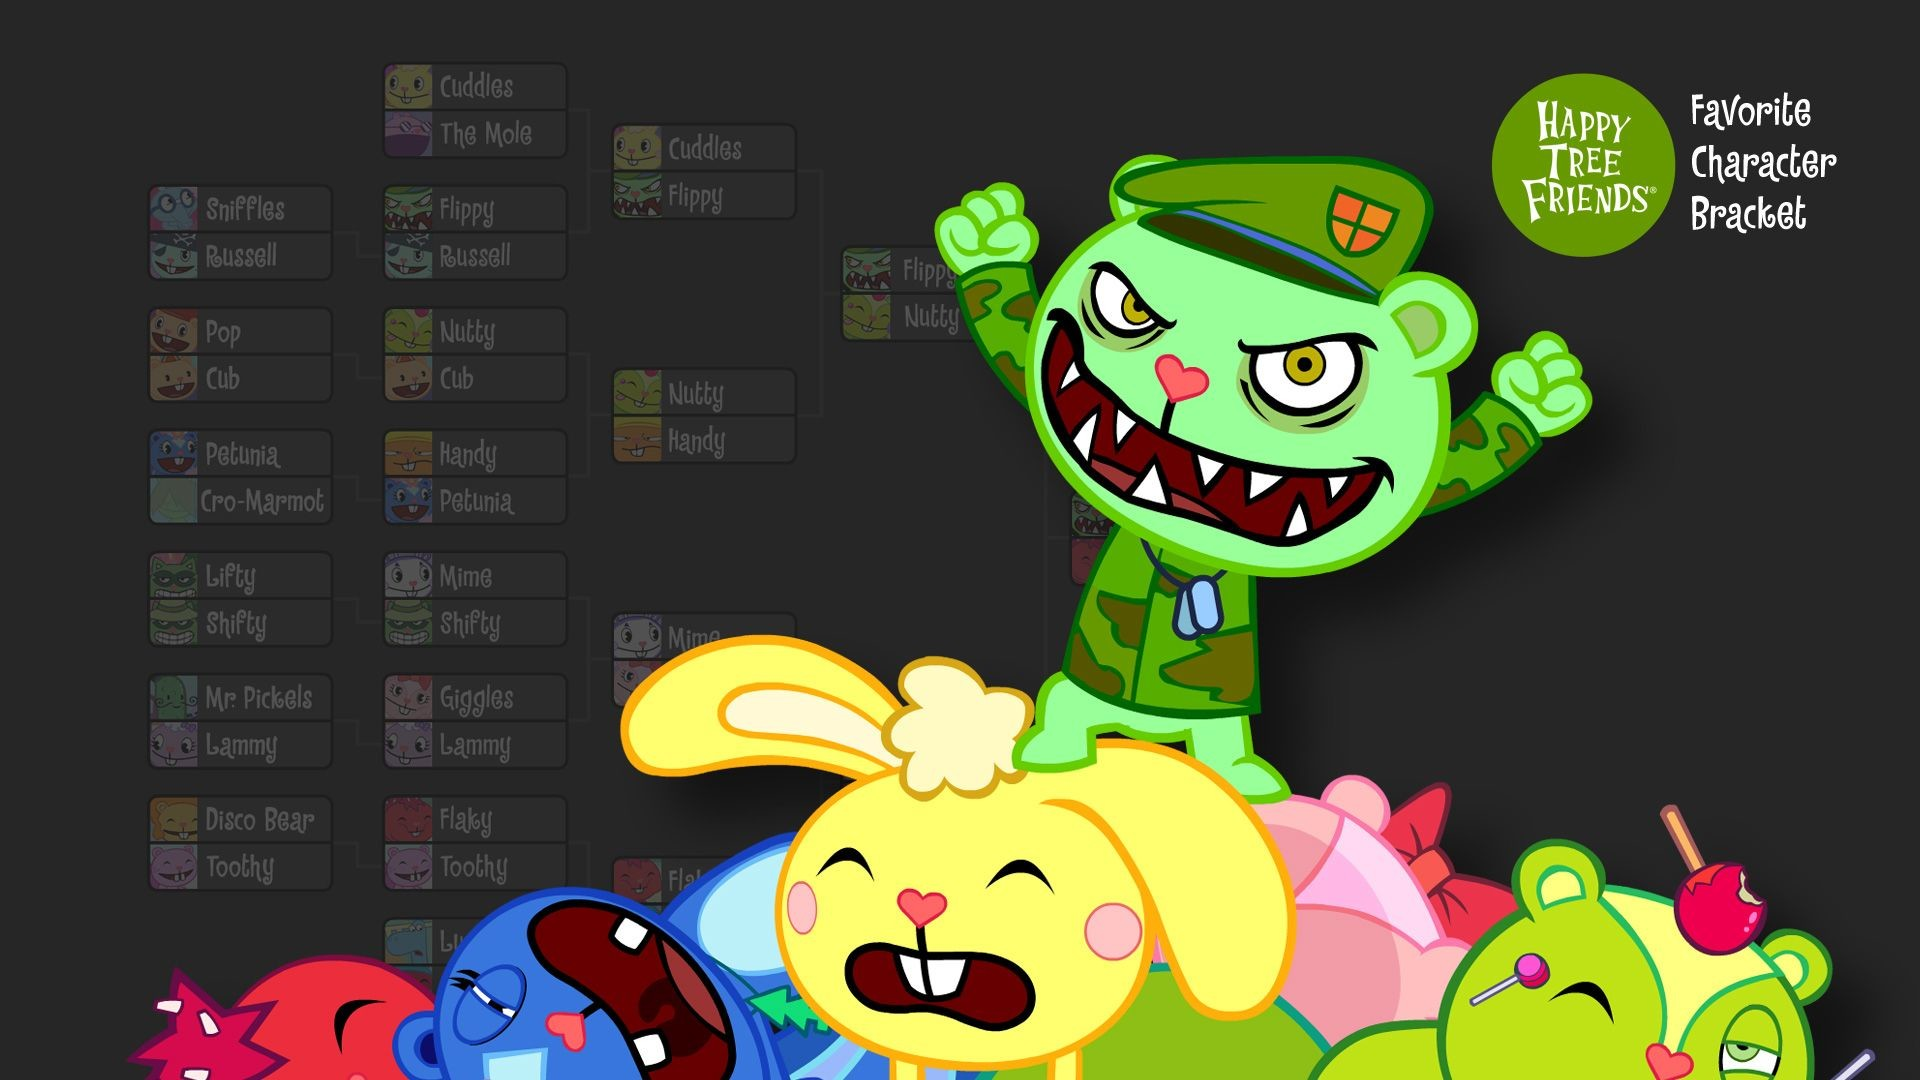 1920x1080 Happy Tree Friends Wallpaper 17 - 1920 X 1080